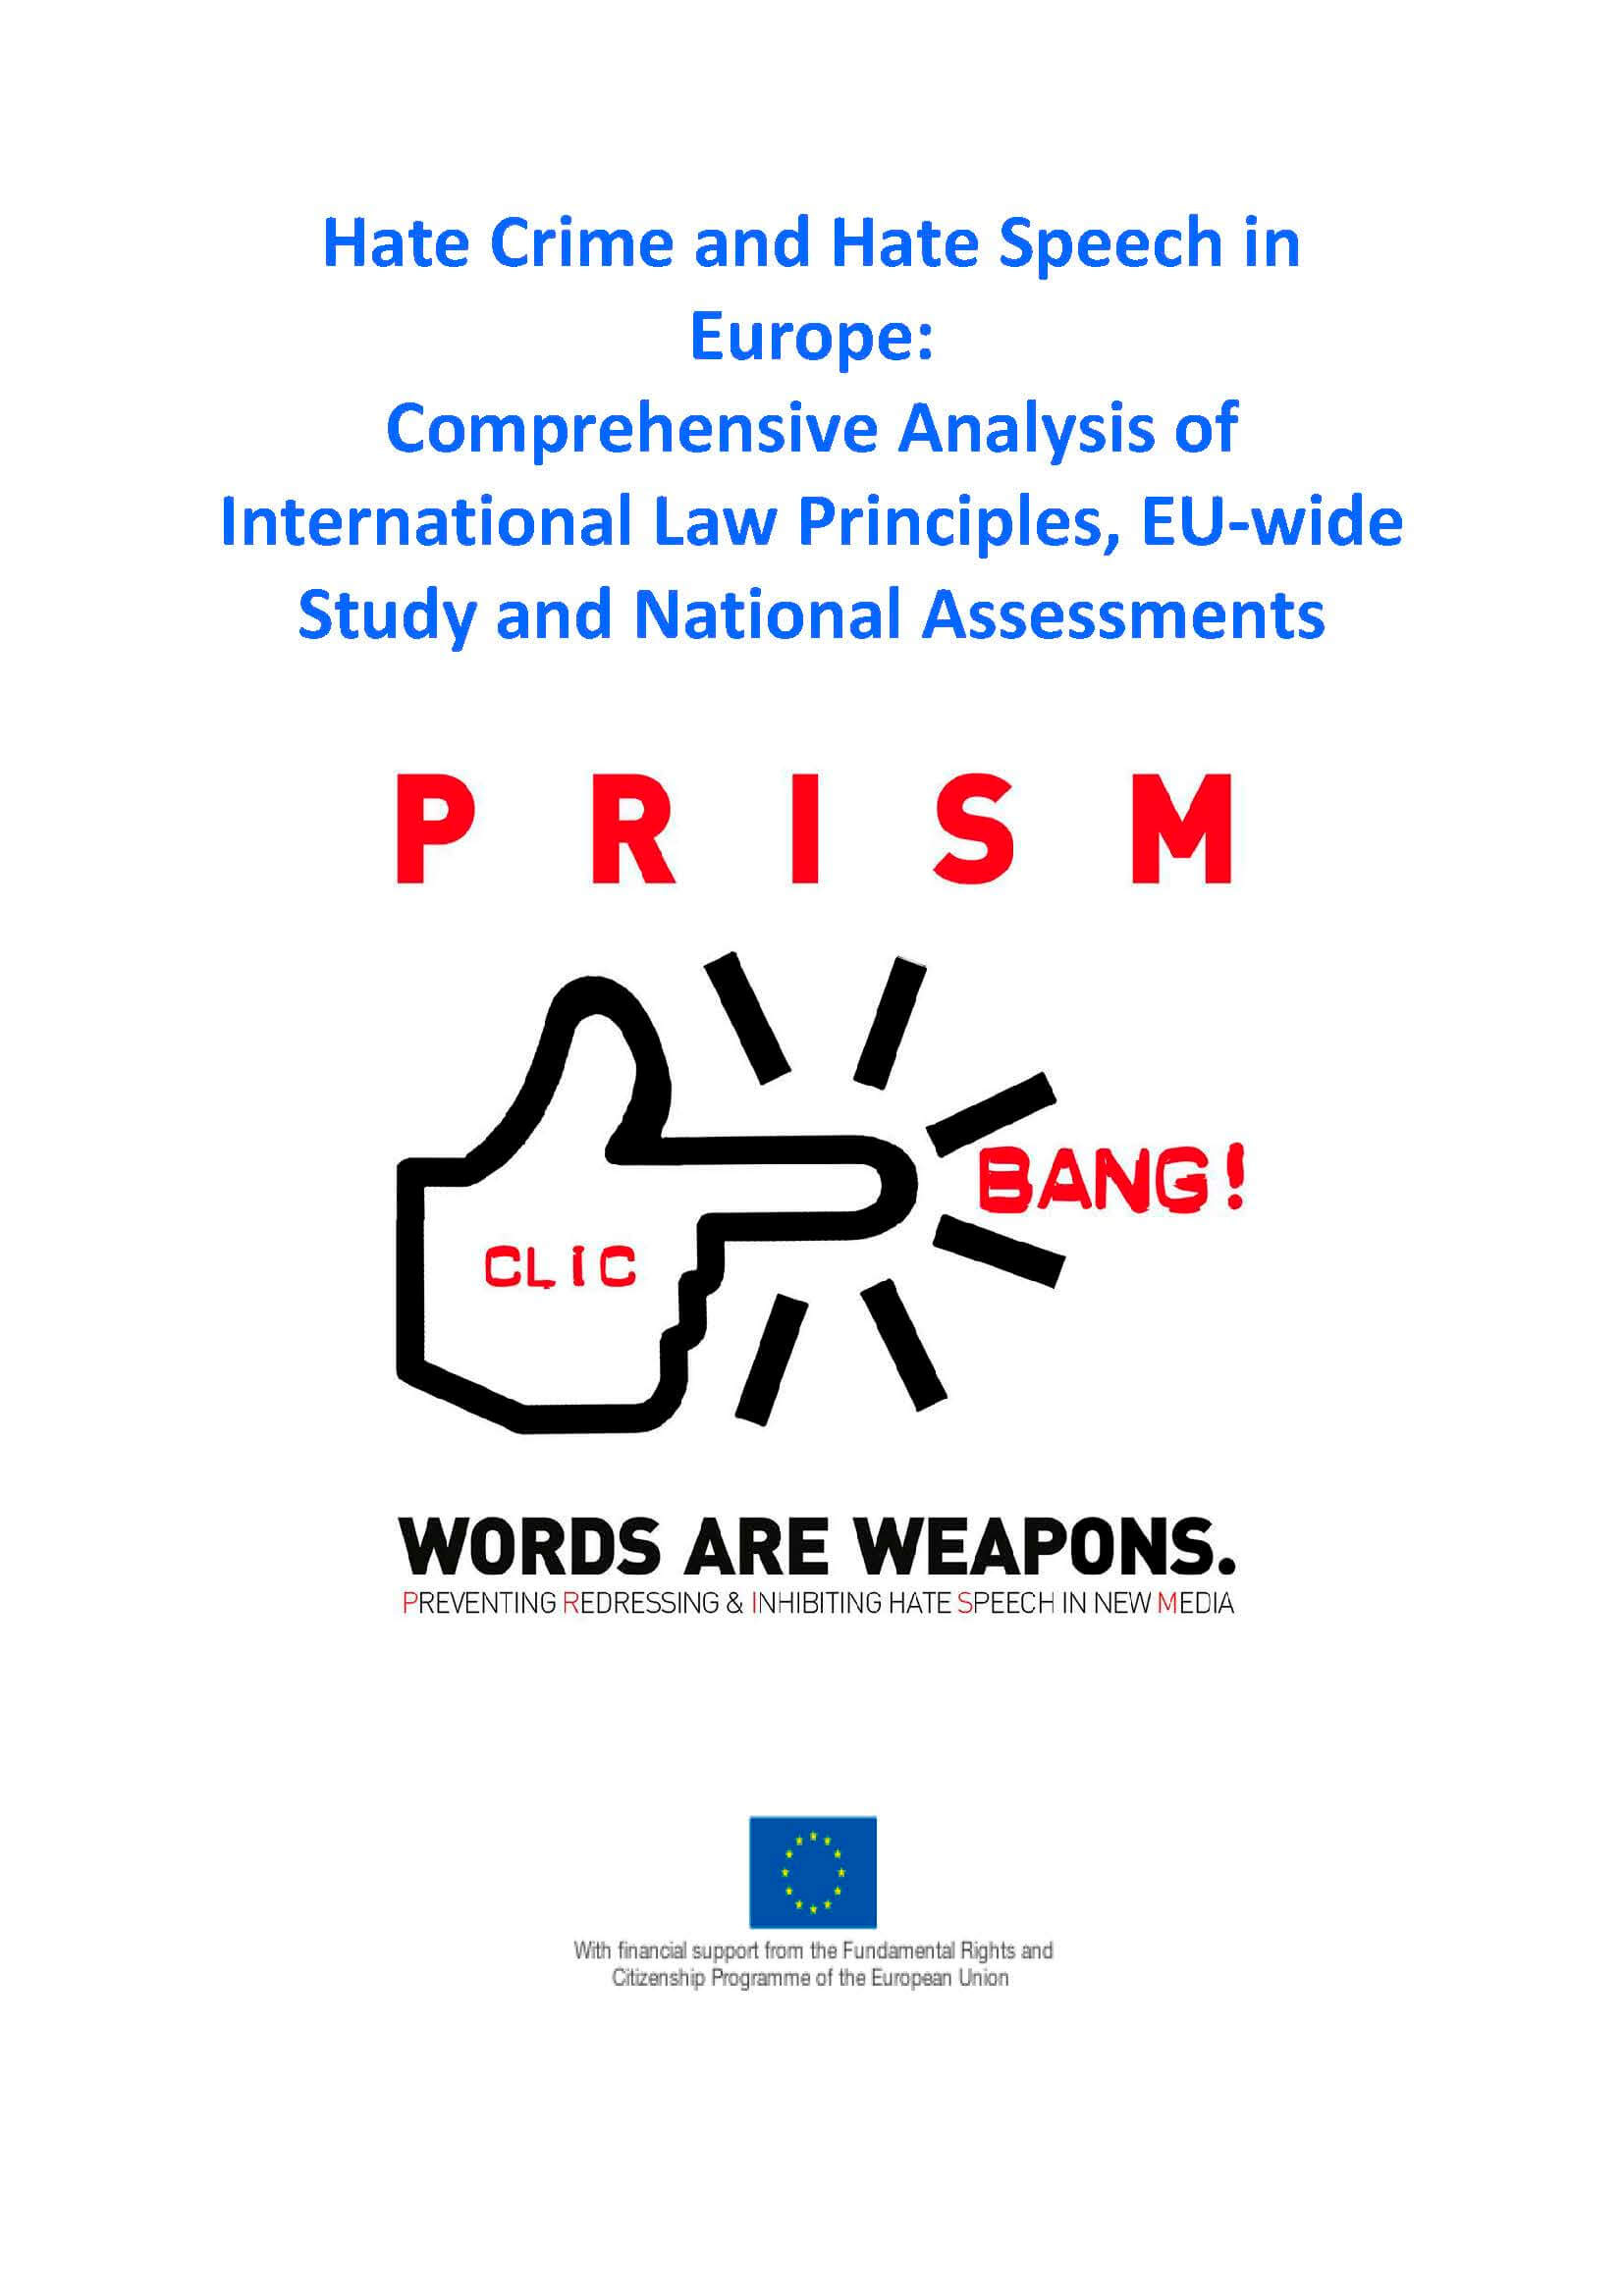 Hate Crime and Hate Speech in Europe: Comprehensive Analysis